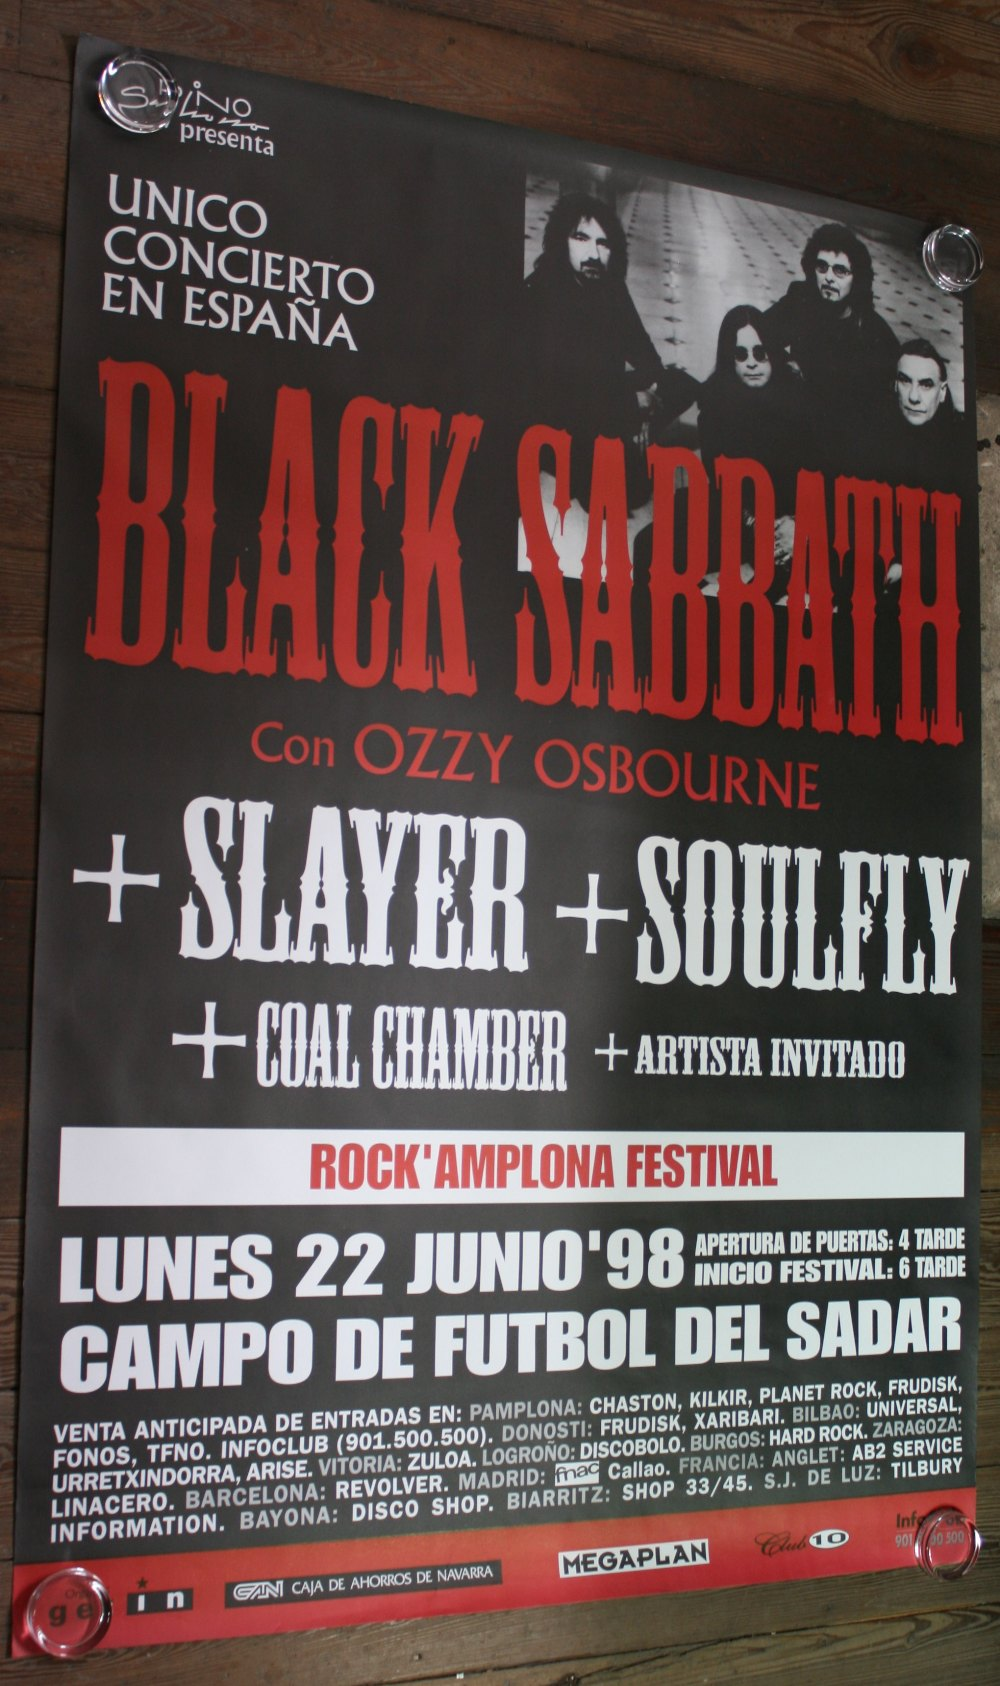 Lot 54 - BLACK SABBATH - large Spanish concert poster (54``x38``) from 22nd June 1998. The poster is rolled